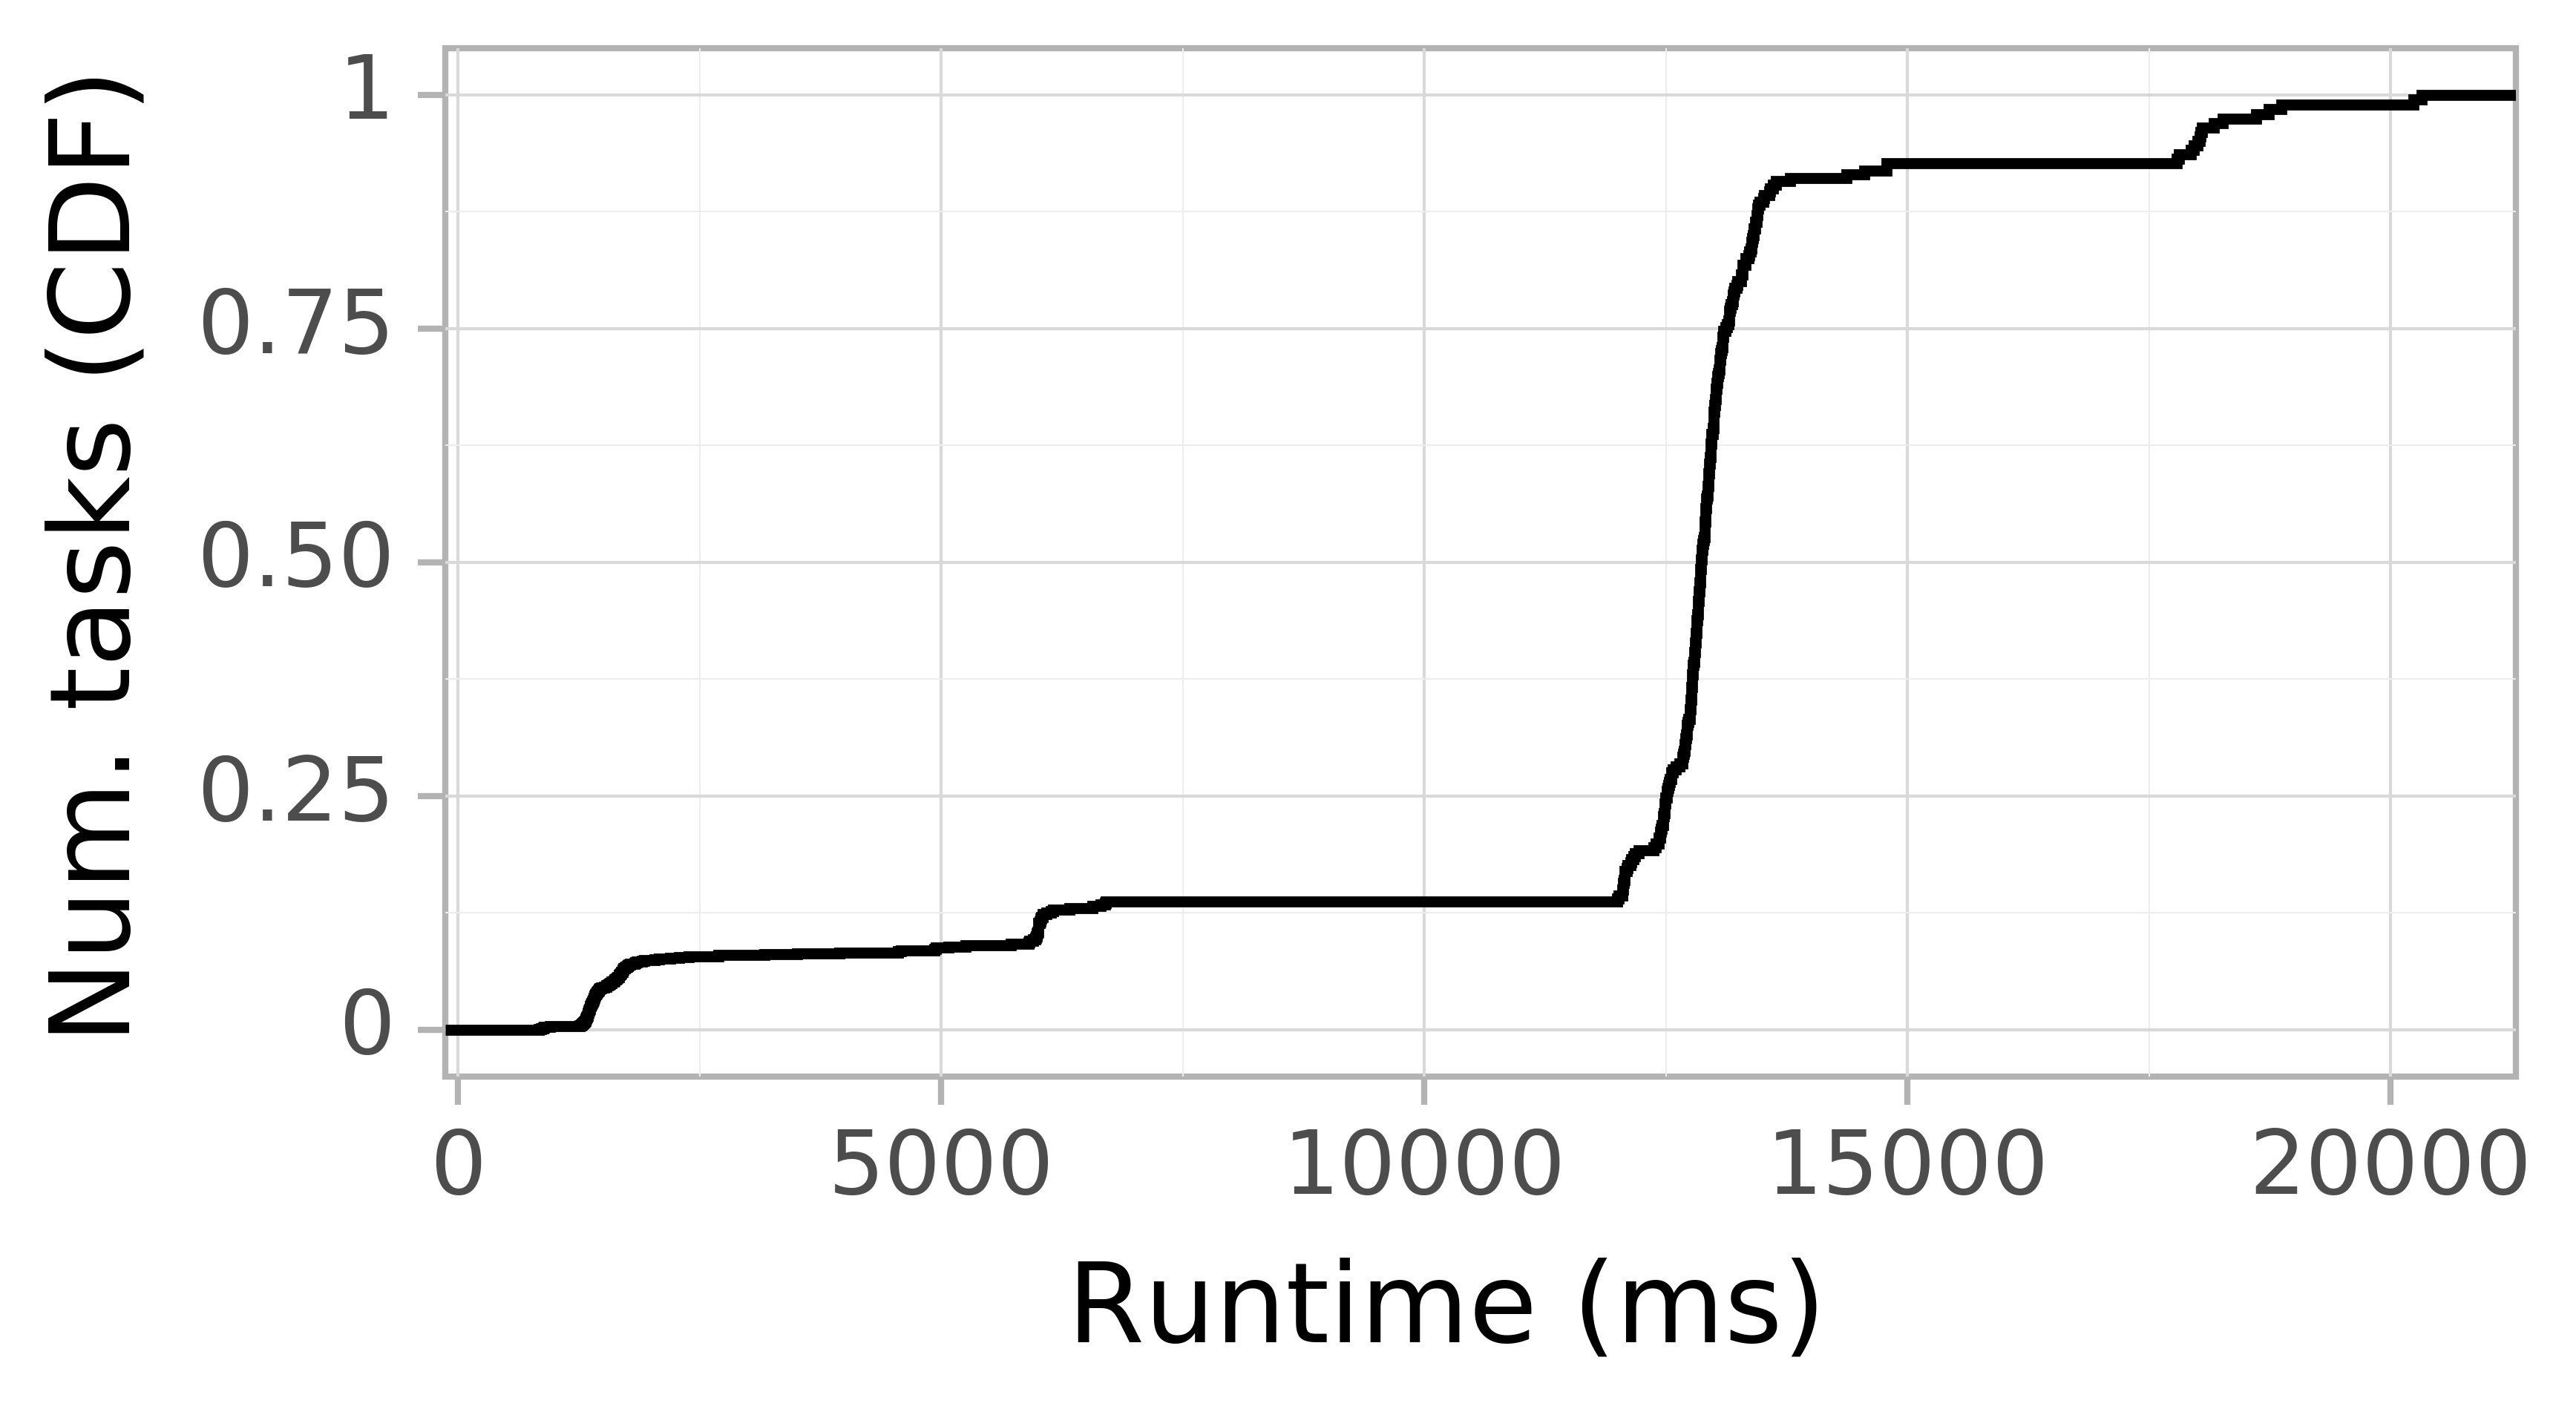 Task runtime CDF graph for the askalon-new_ee11 trace.